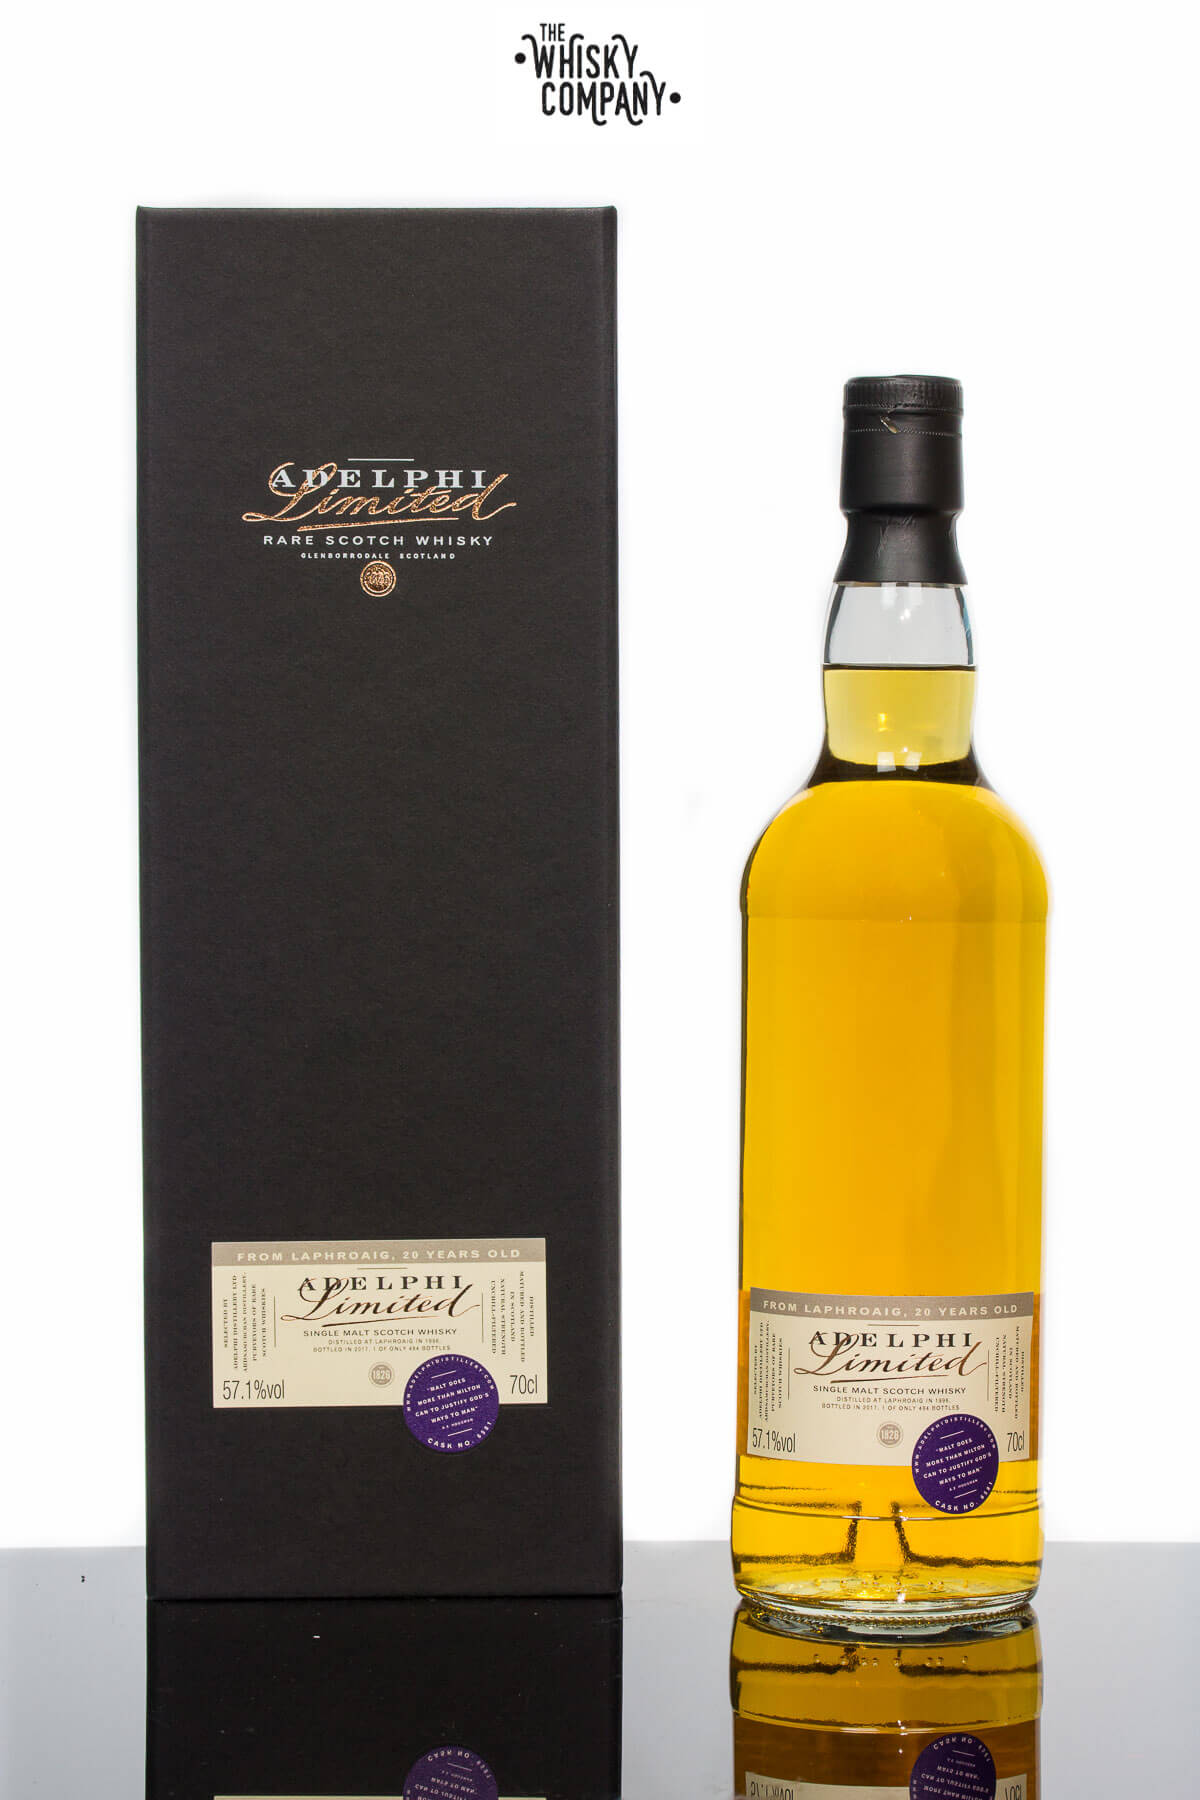 Adelphi 1996 Laphroaig 20 Years Old Cask 6581 Islay Single Malt Scotch Whisky